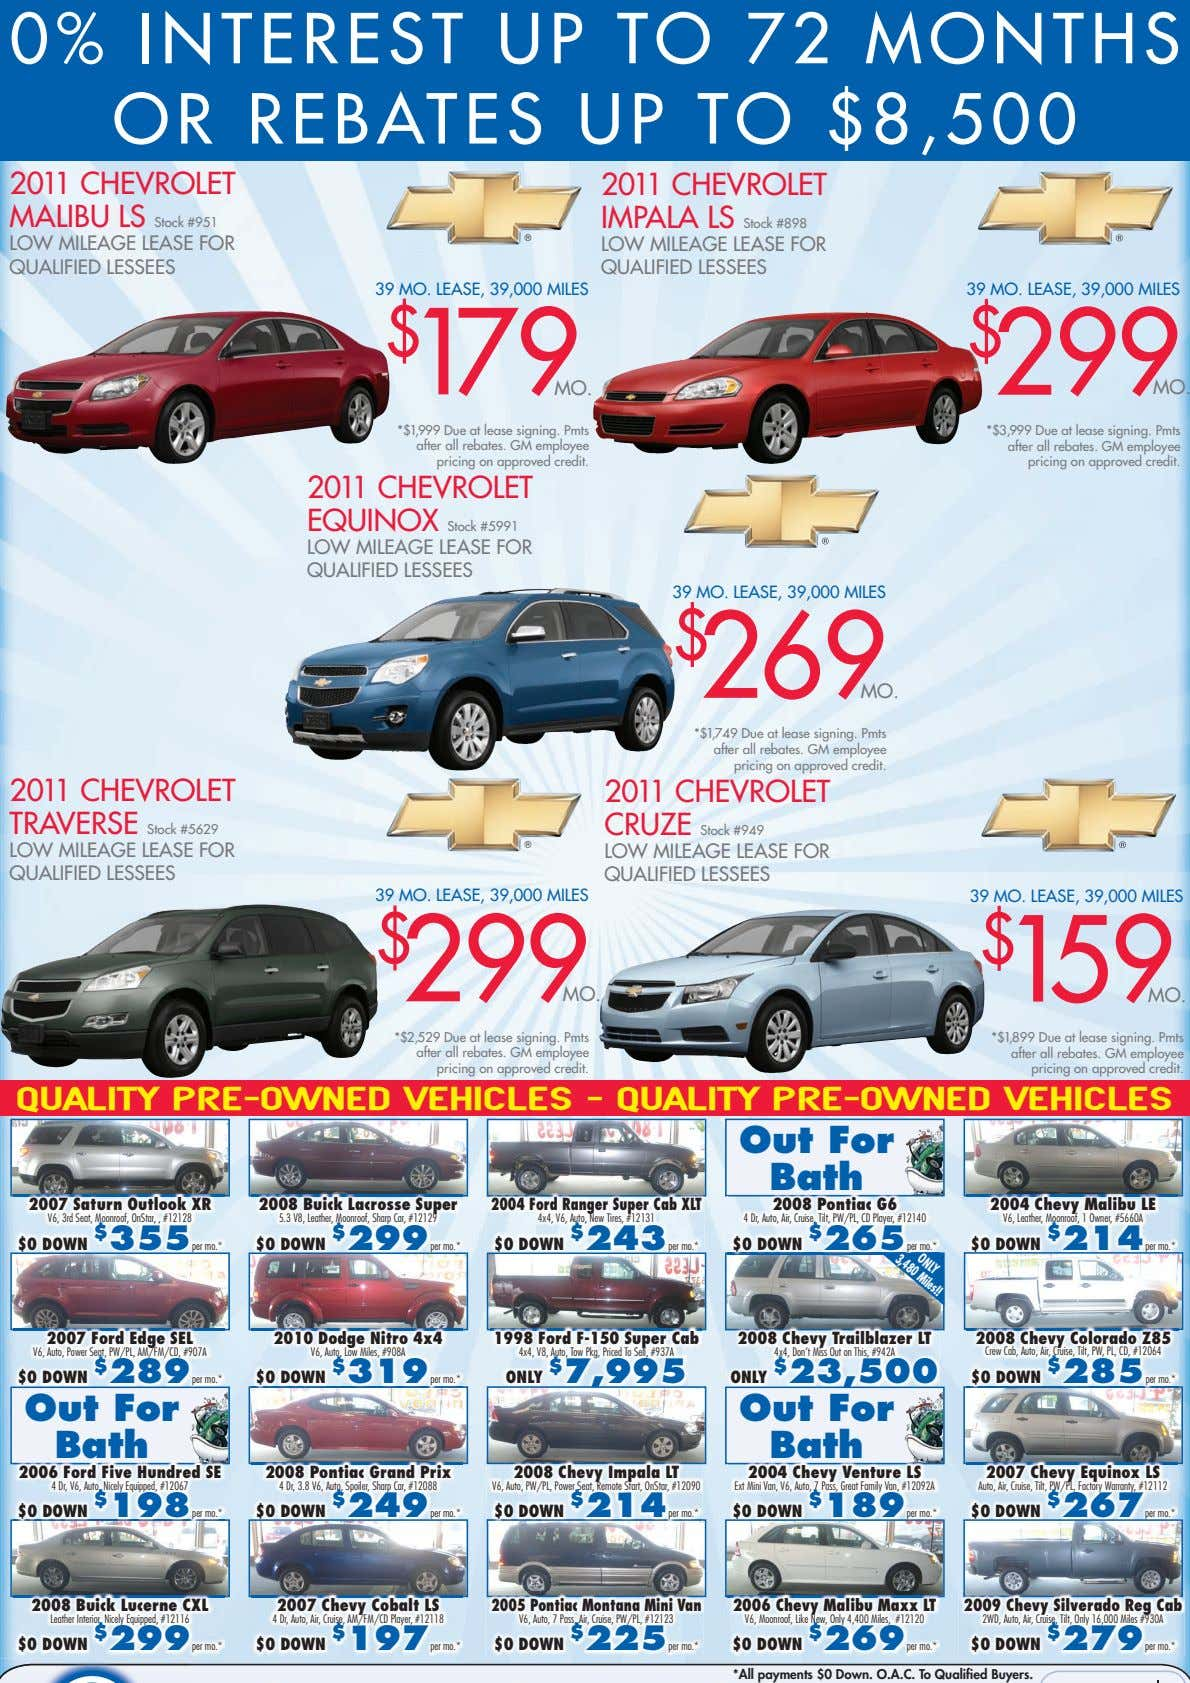 0% INTEREST UP TO 72 MONTHS OR REBATES UP TO $8,500 2011 CHEVROLET 2011 CHEVROLET